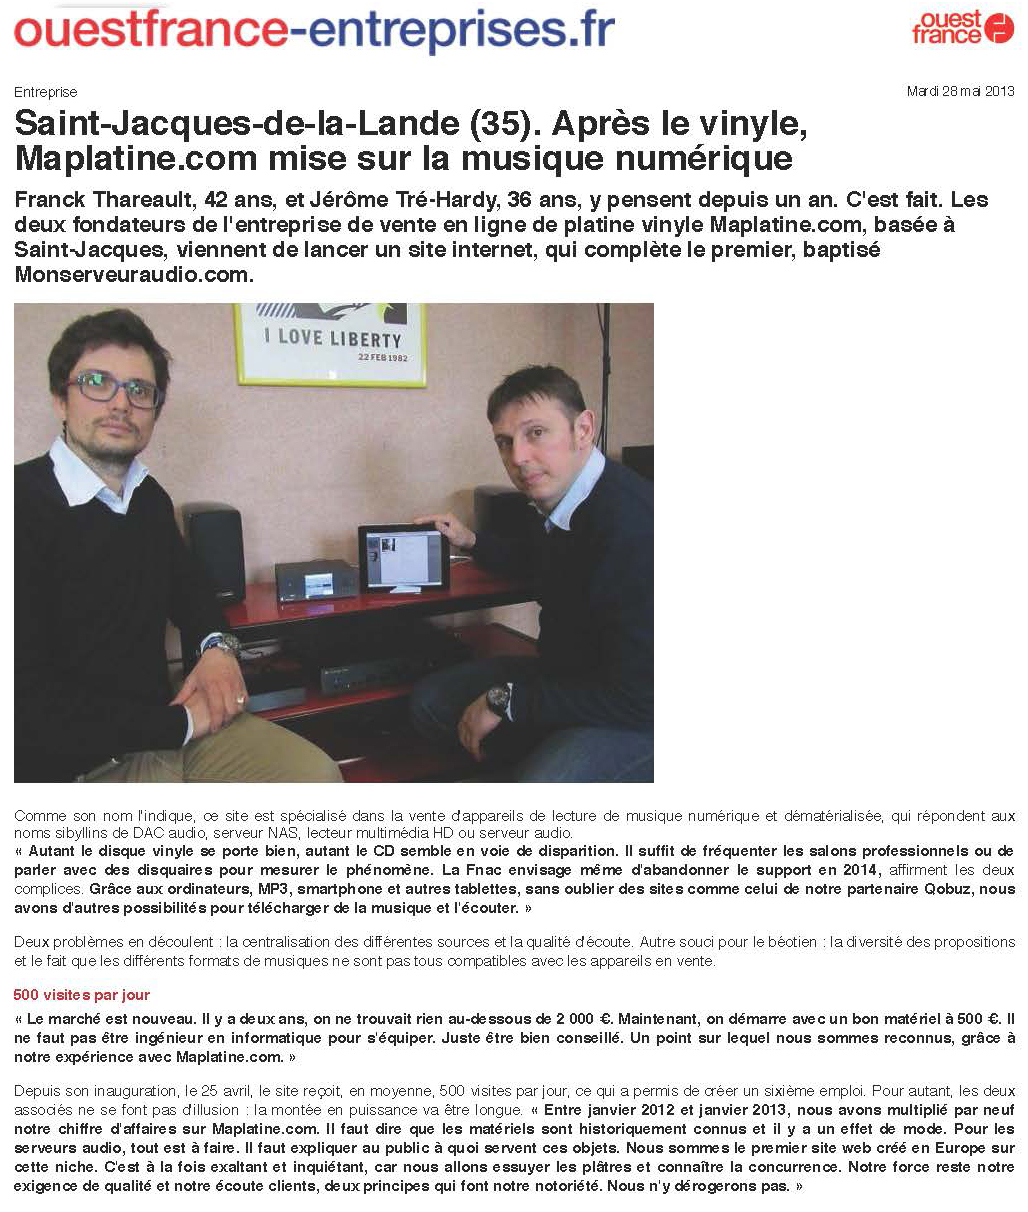 Ouest France Entreprises's article about maPlatine.com